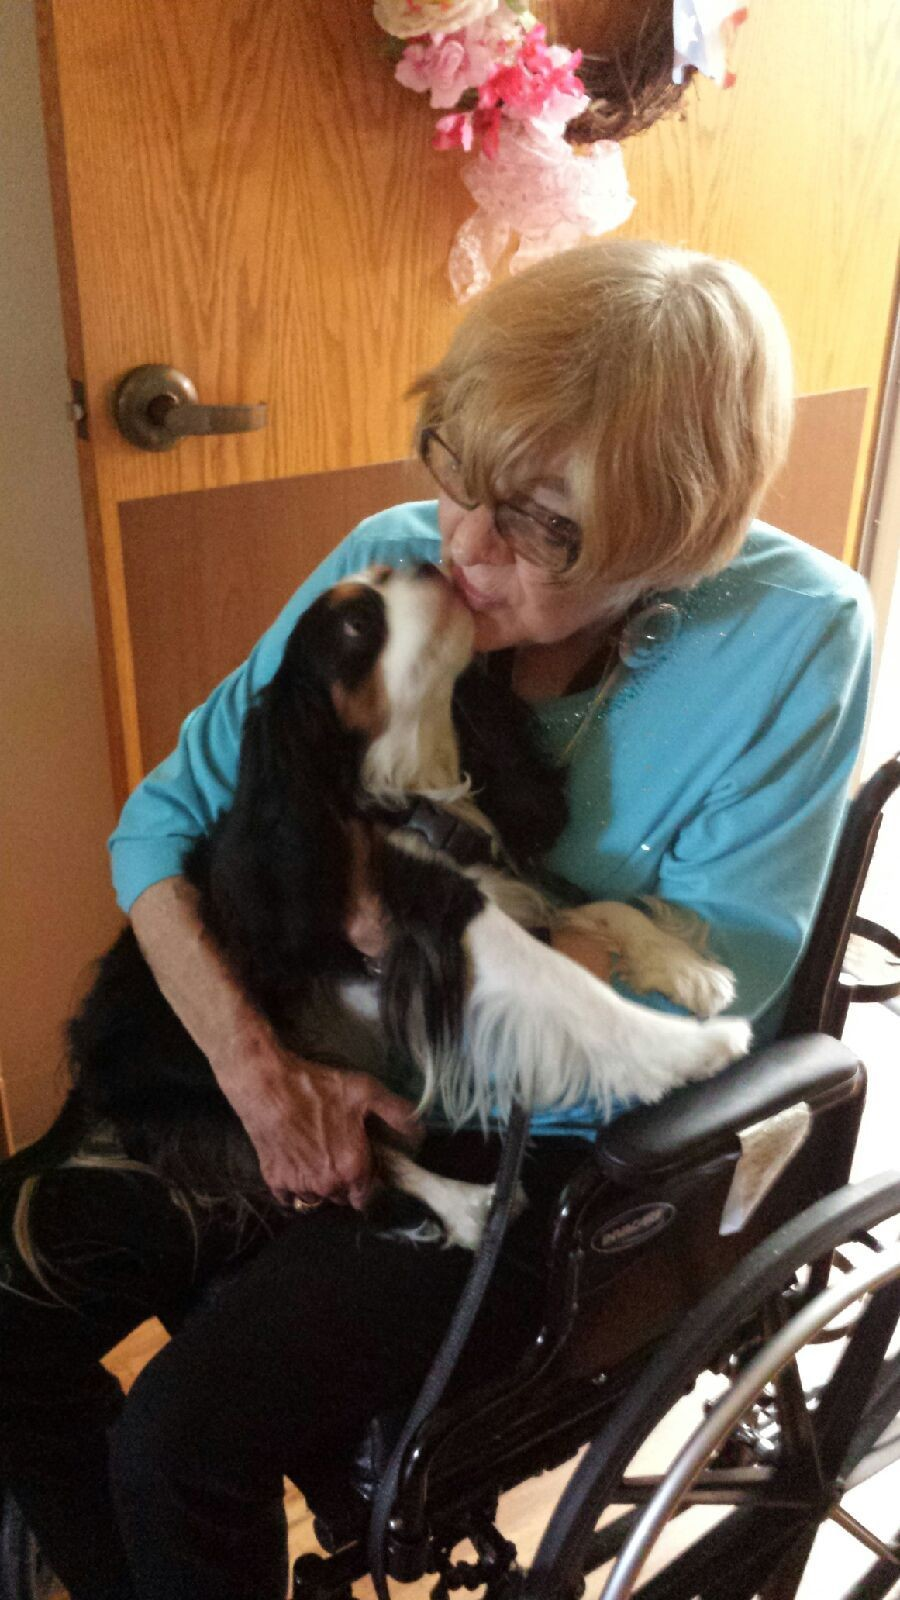 Ann, a retired veteran at William R. Courtney Texas State Veterans Home, joyously connects best with Chaucer, a trained therapy dog from Austin Dog Alliance.